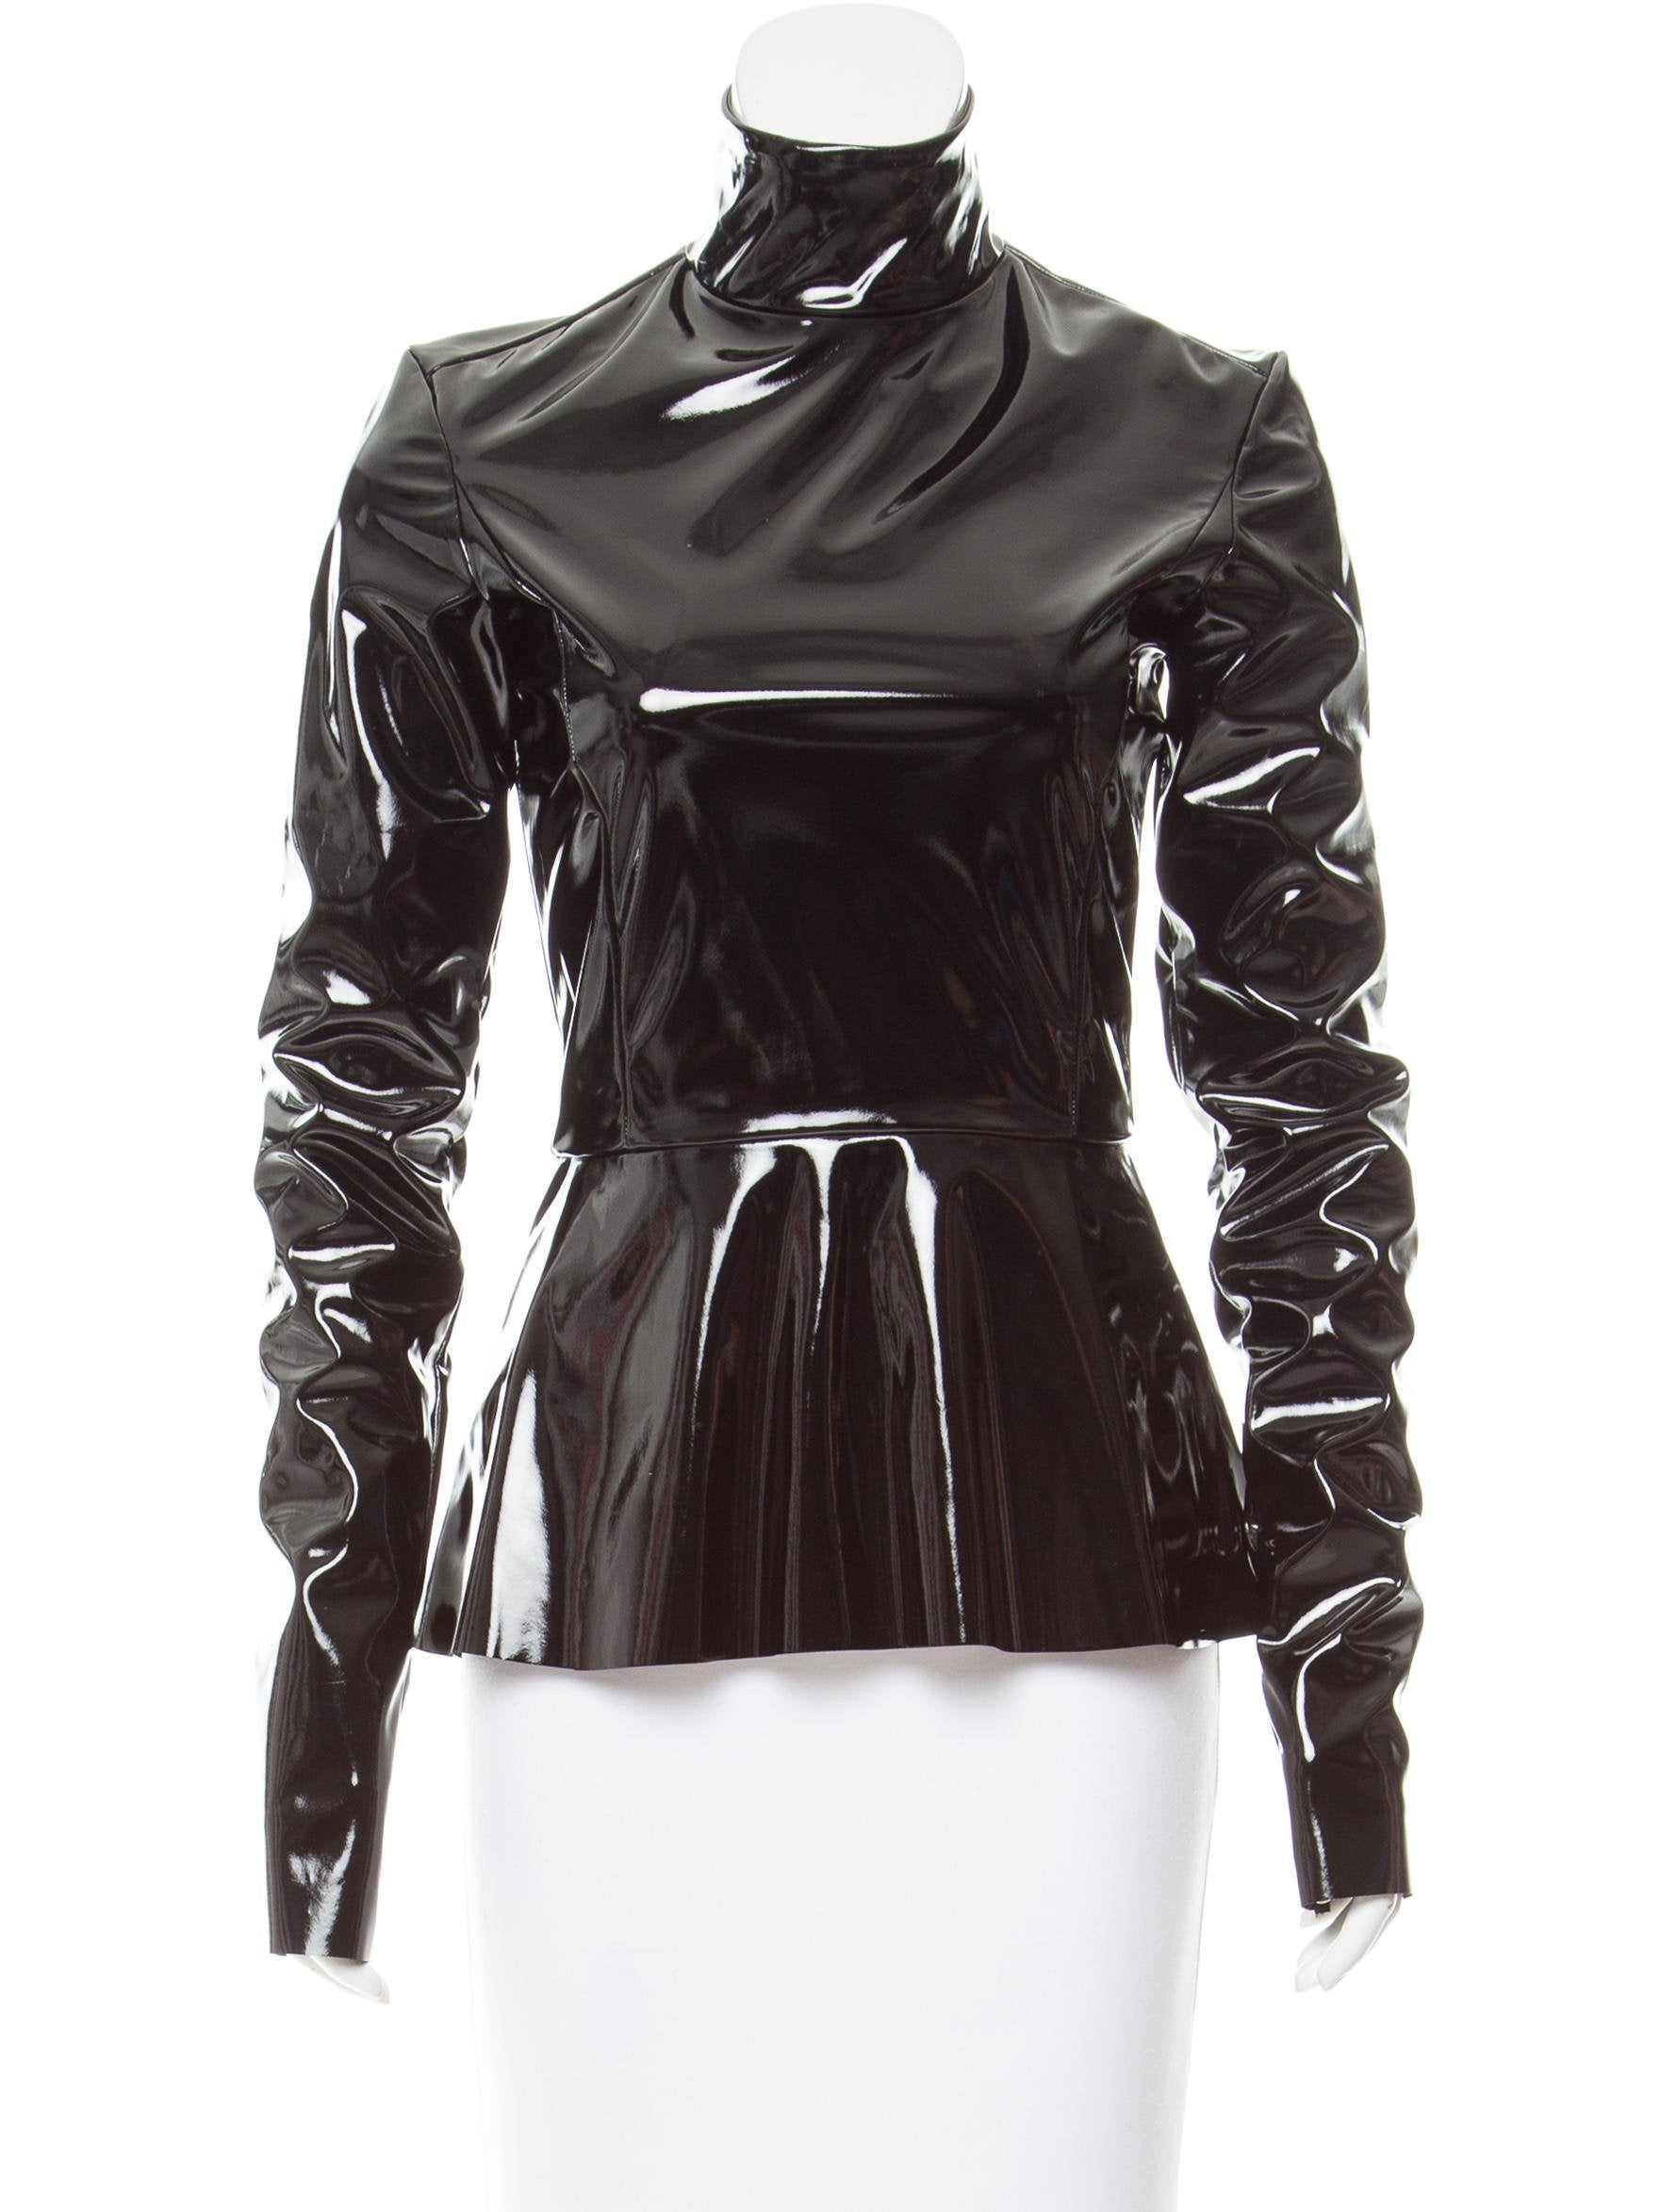 21d75ab75f Tome PVC Peplum Top - Clothing - WTOME21820